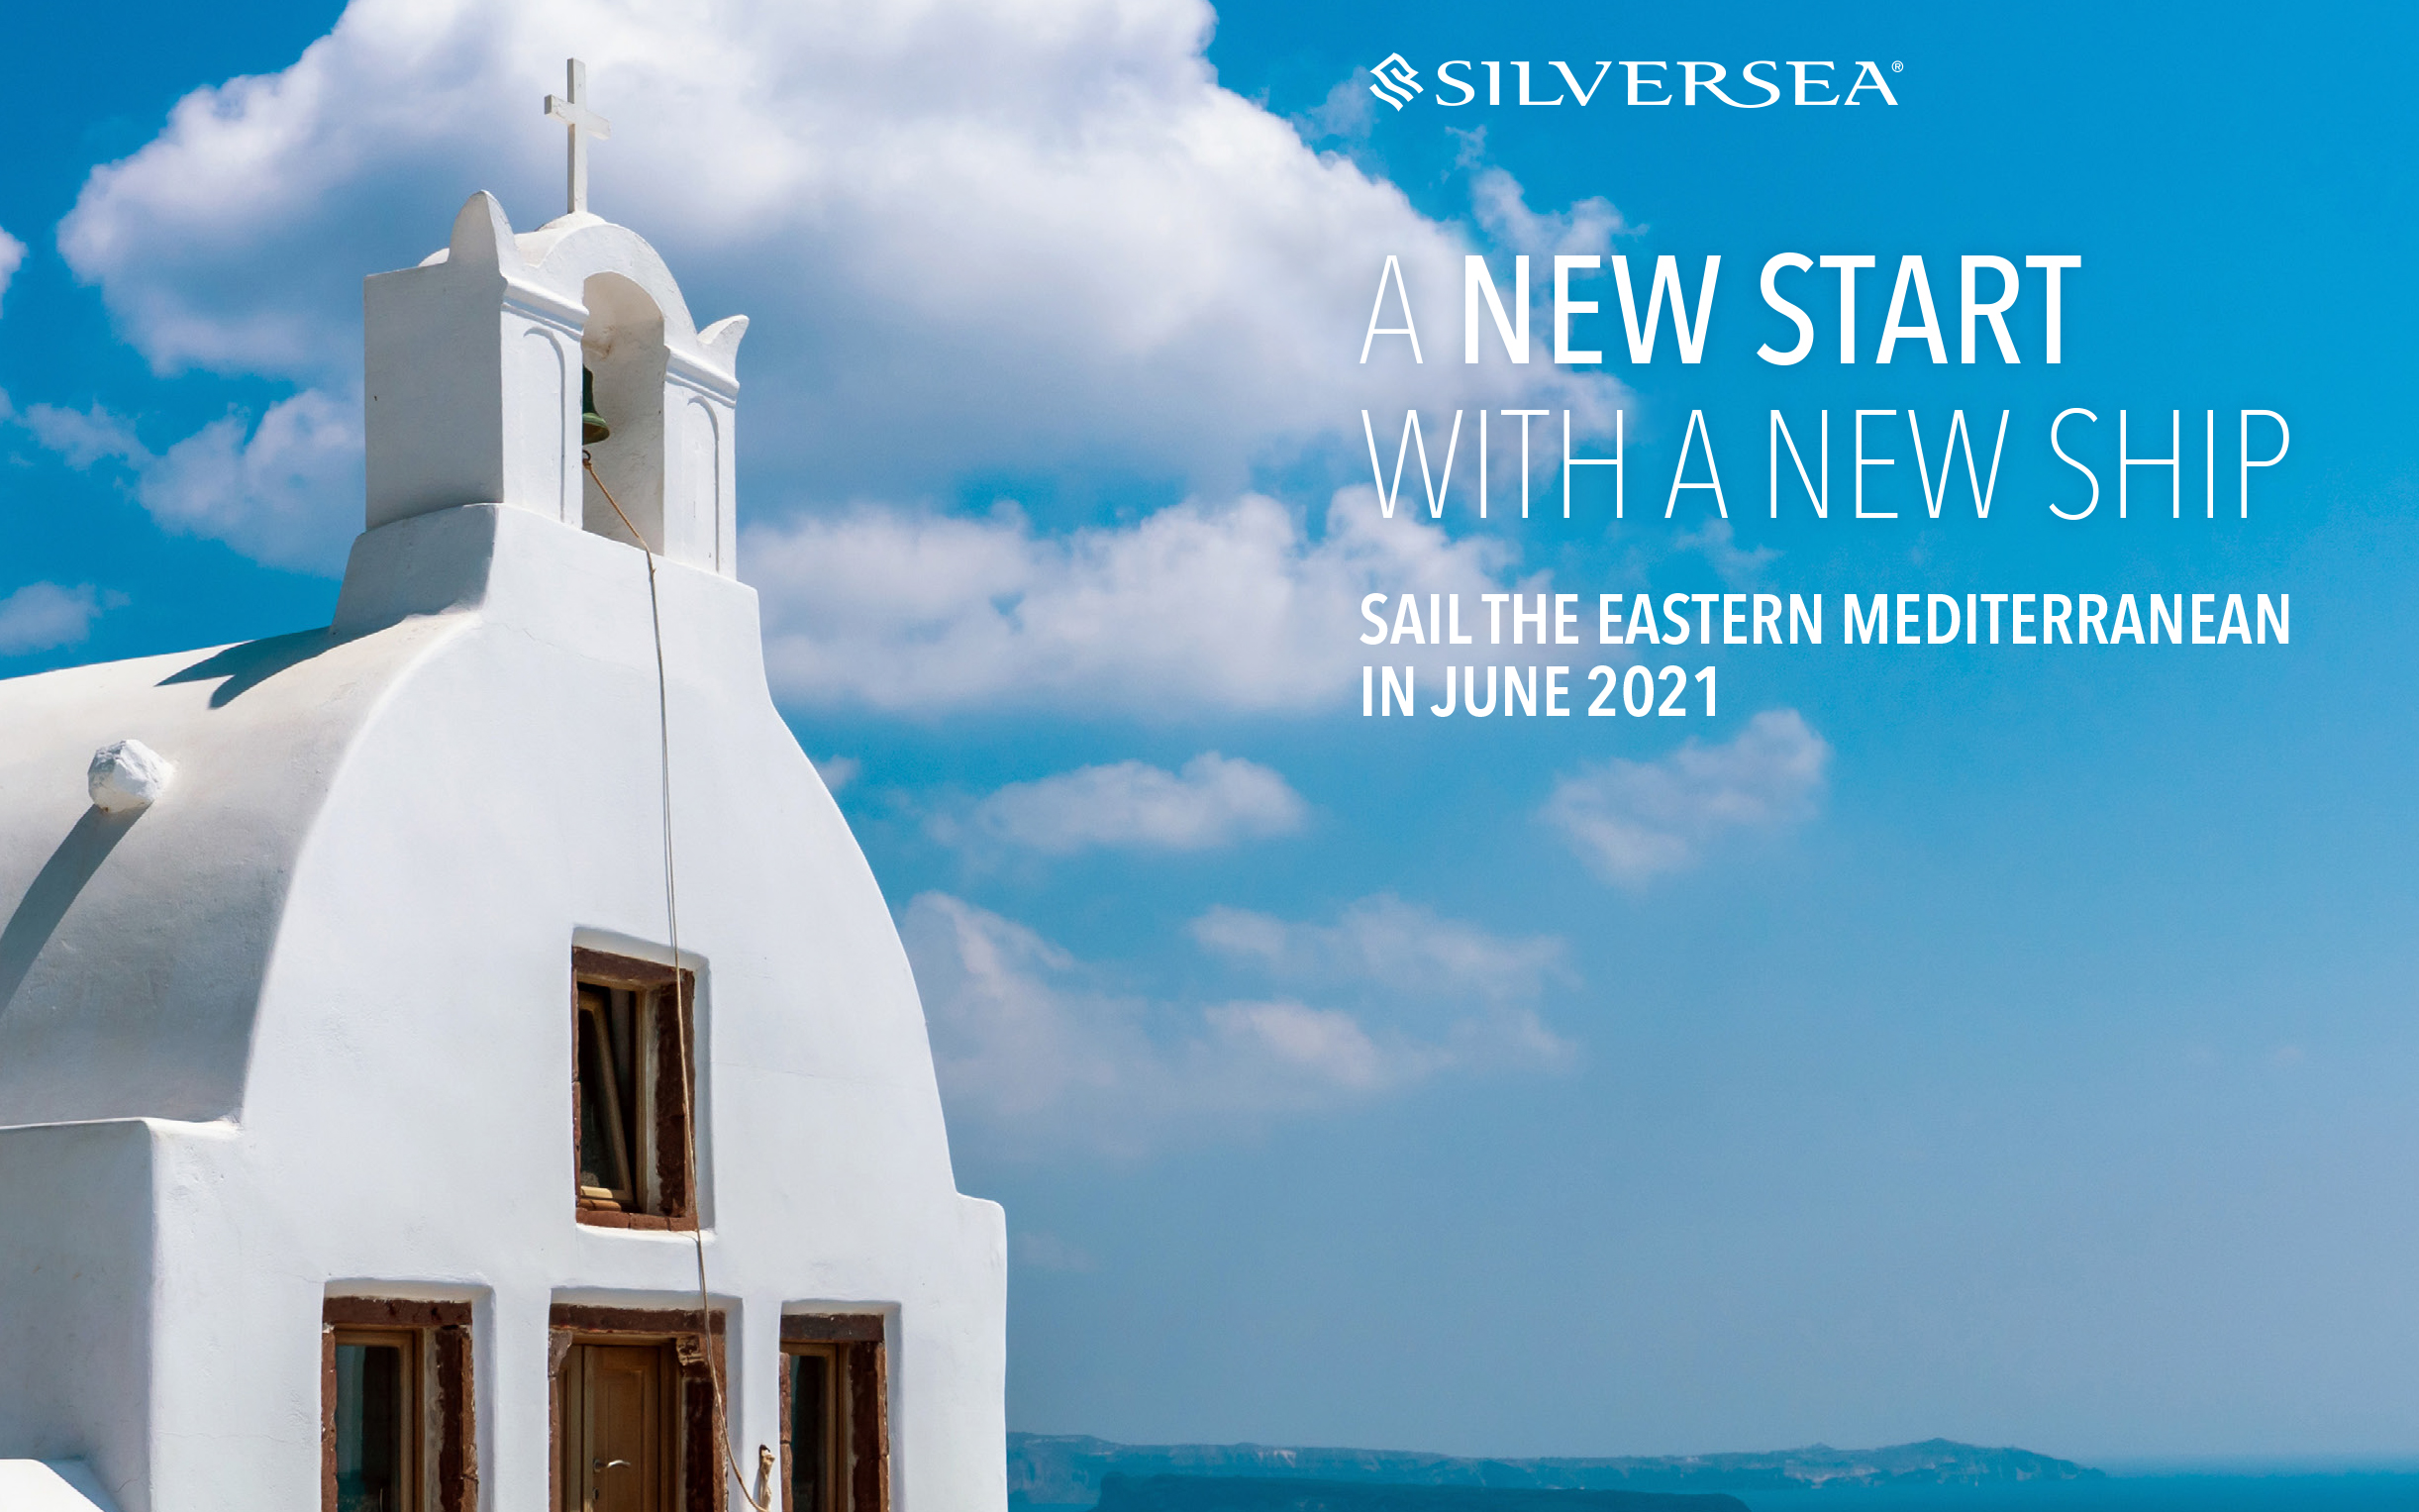 A New Start With A New Ship - Sail The Eastern Mediterranean In June 2021